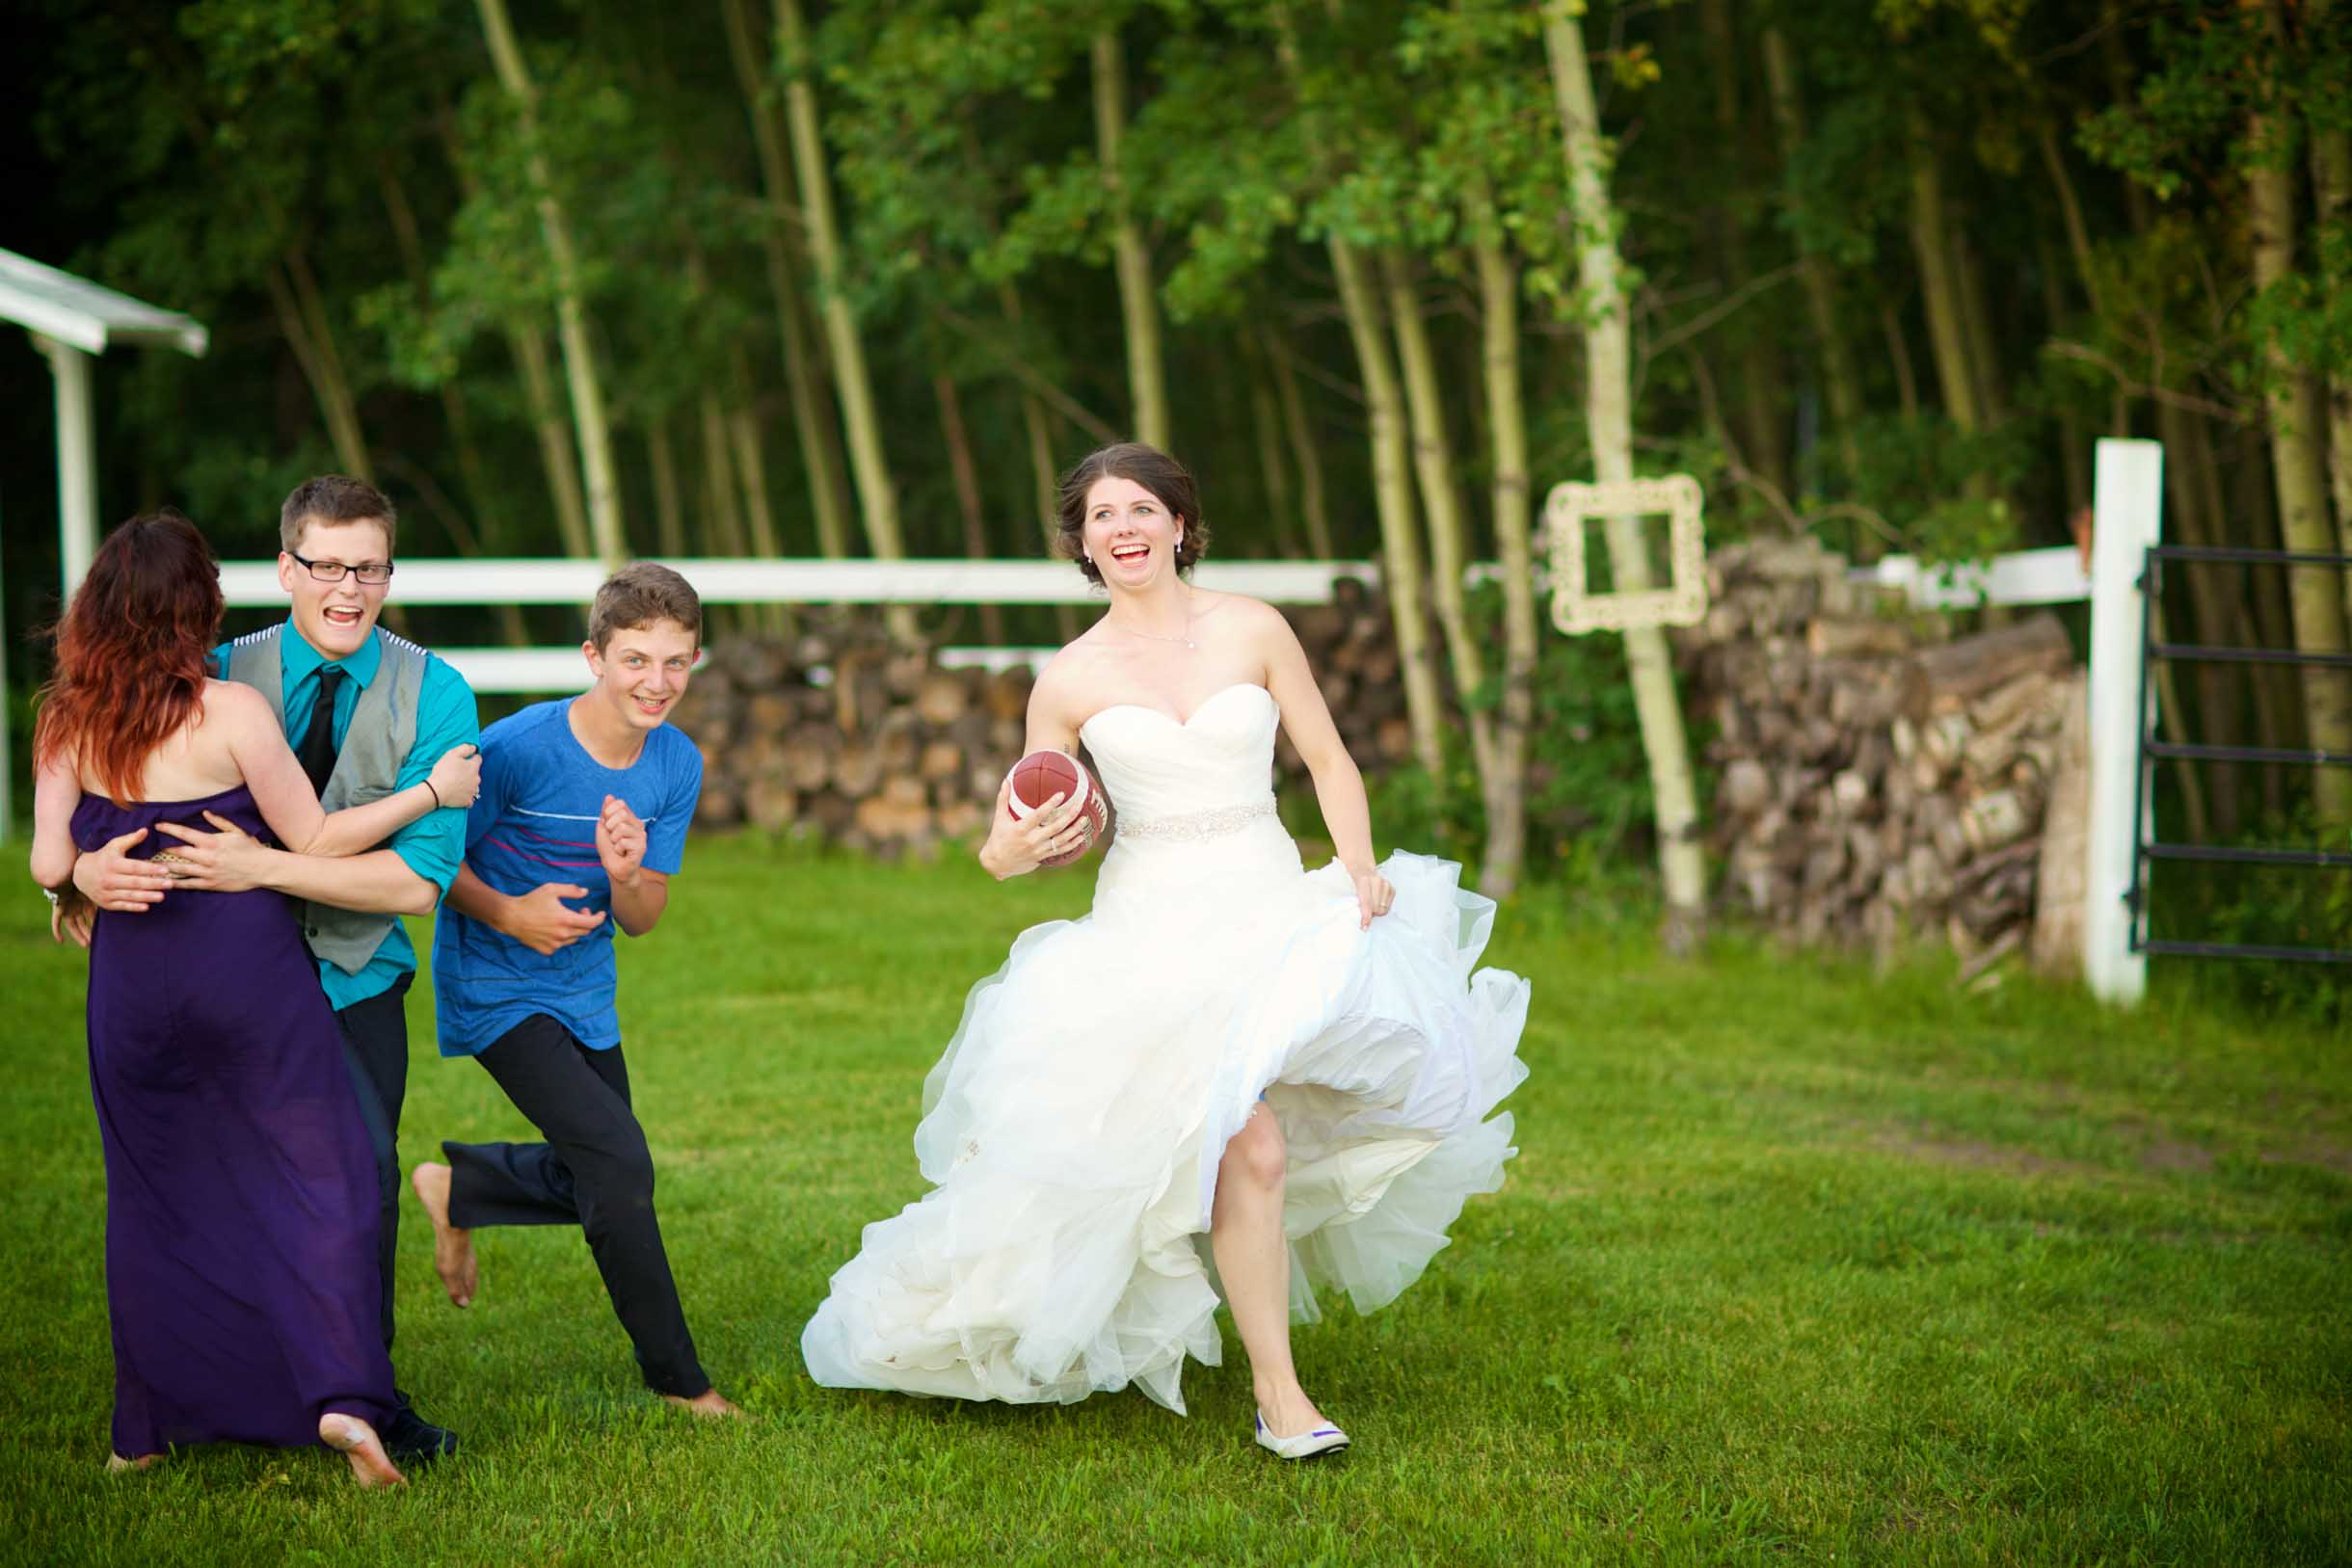 Wedding game ideas football